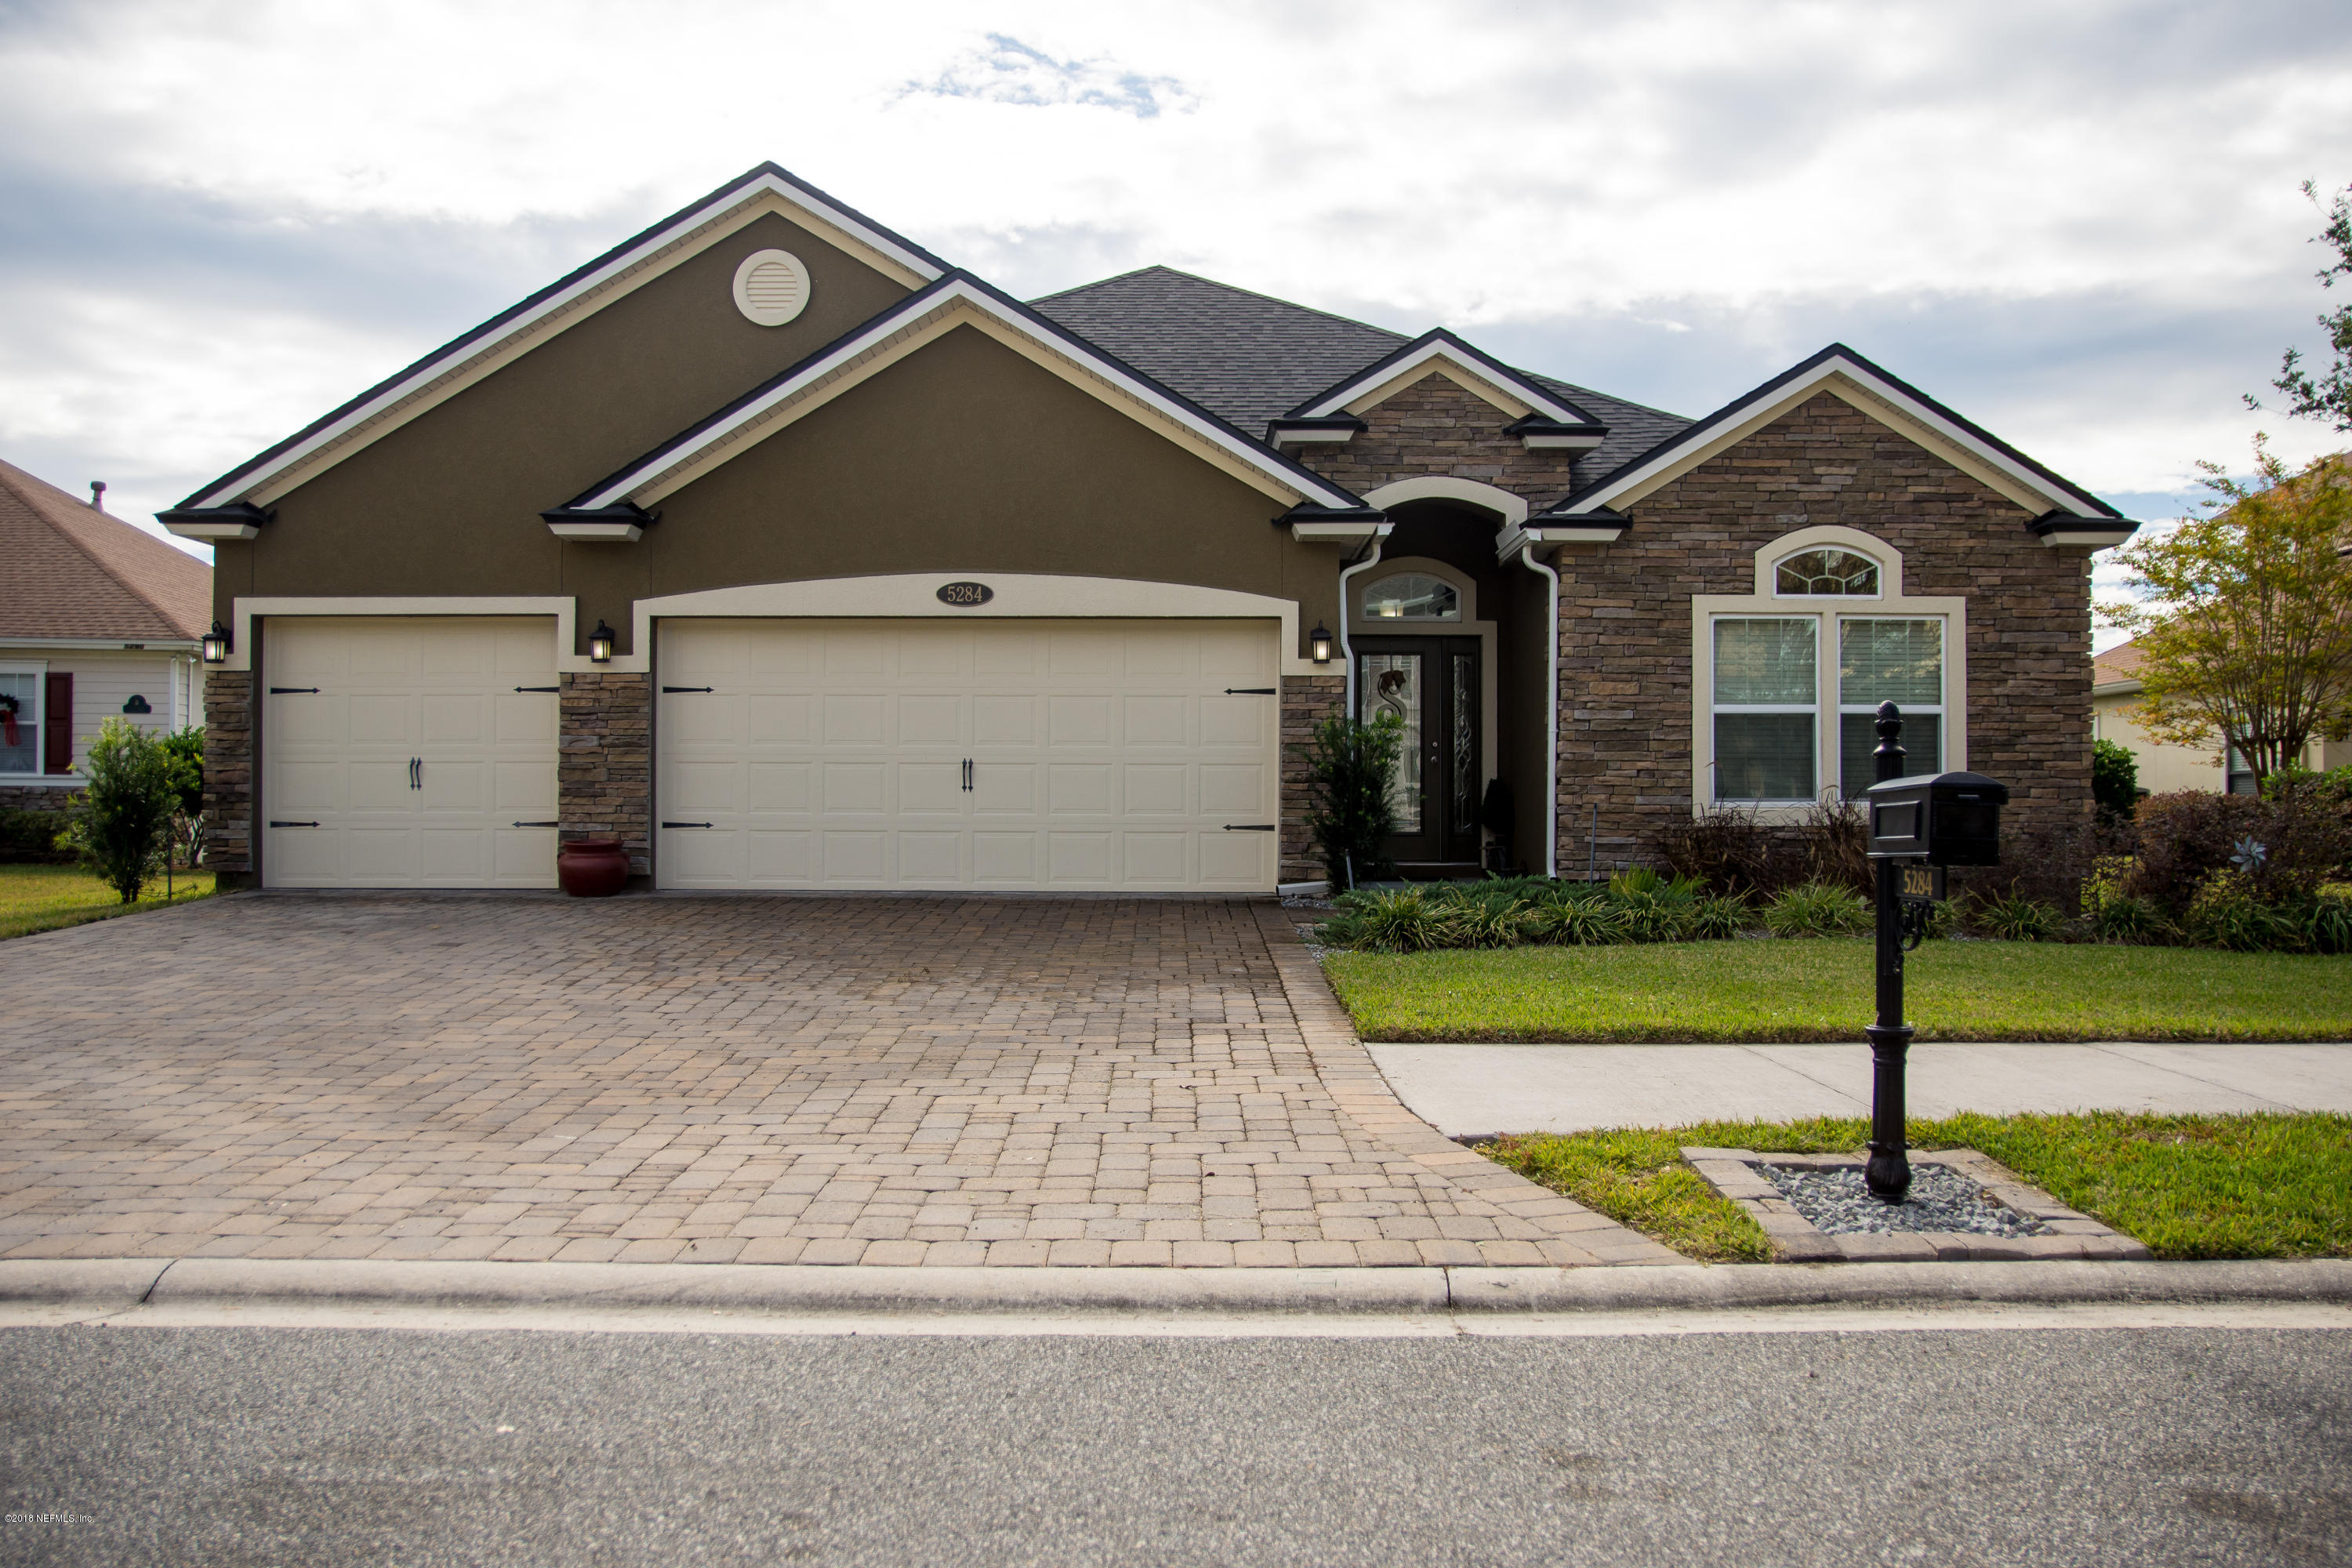 5284 CATTLE CROSSING, JACKSONVILLE, FLORIDA 32226, 5 Bedrooms Bedrooms, ,4 BathroomsBathrooms,Residential - single family,For sale,CATTLE CROSSING,952189